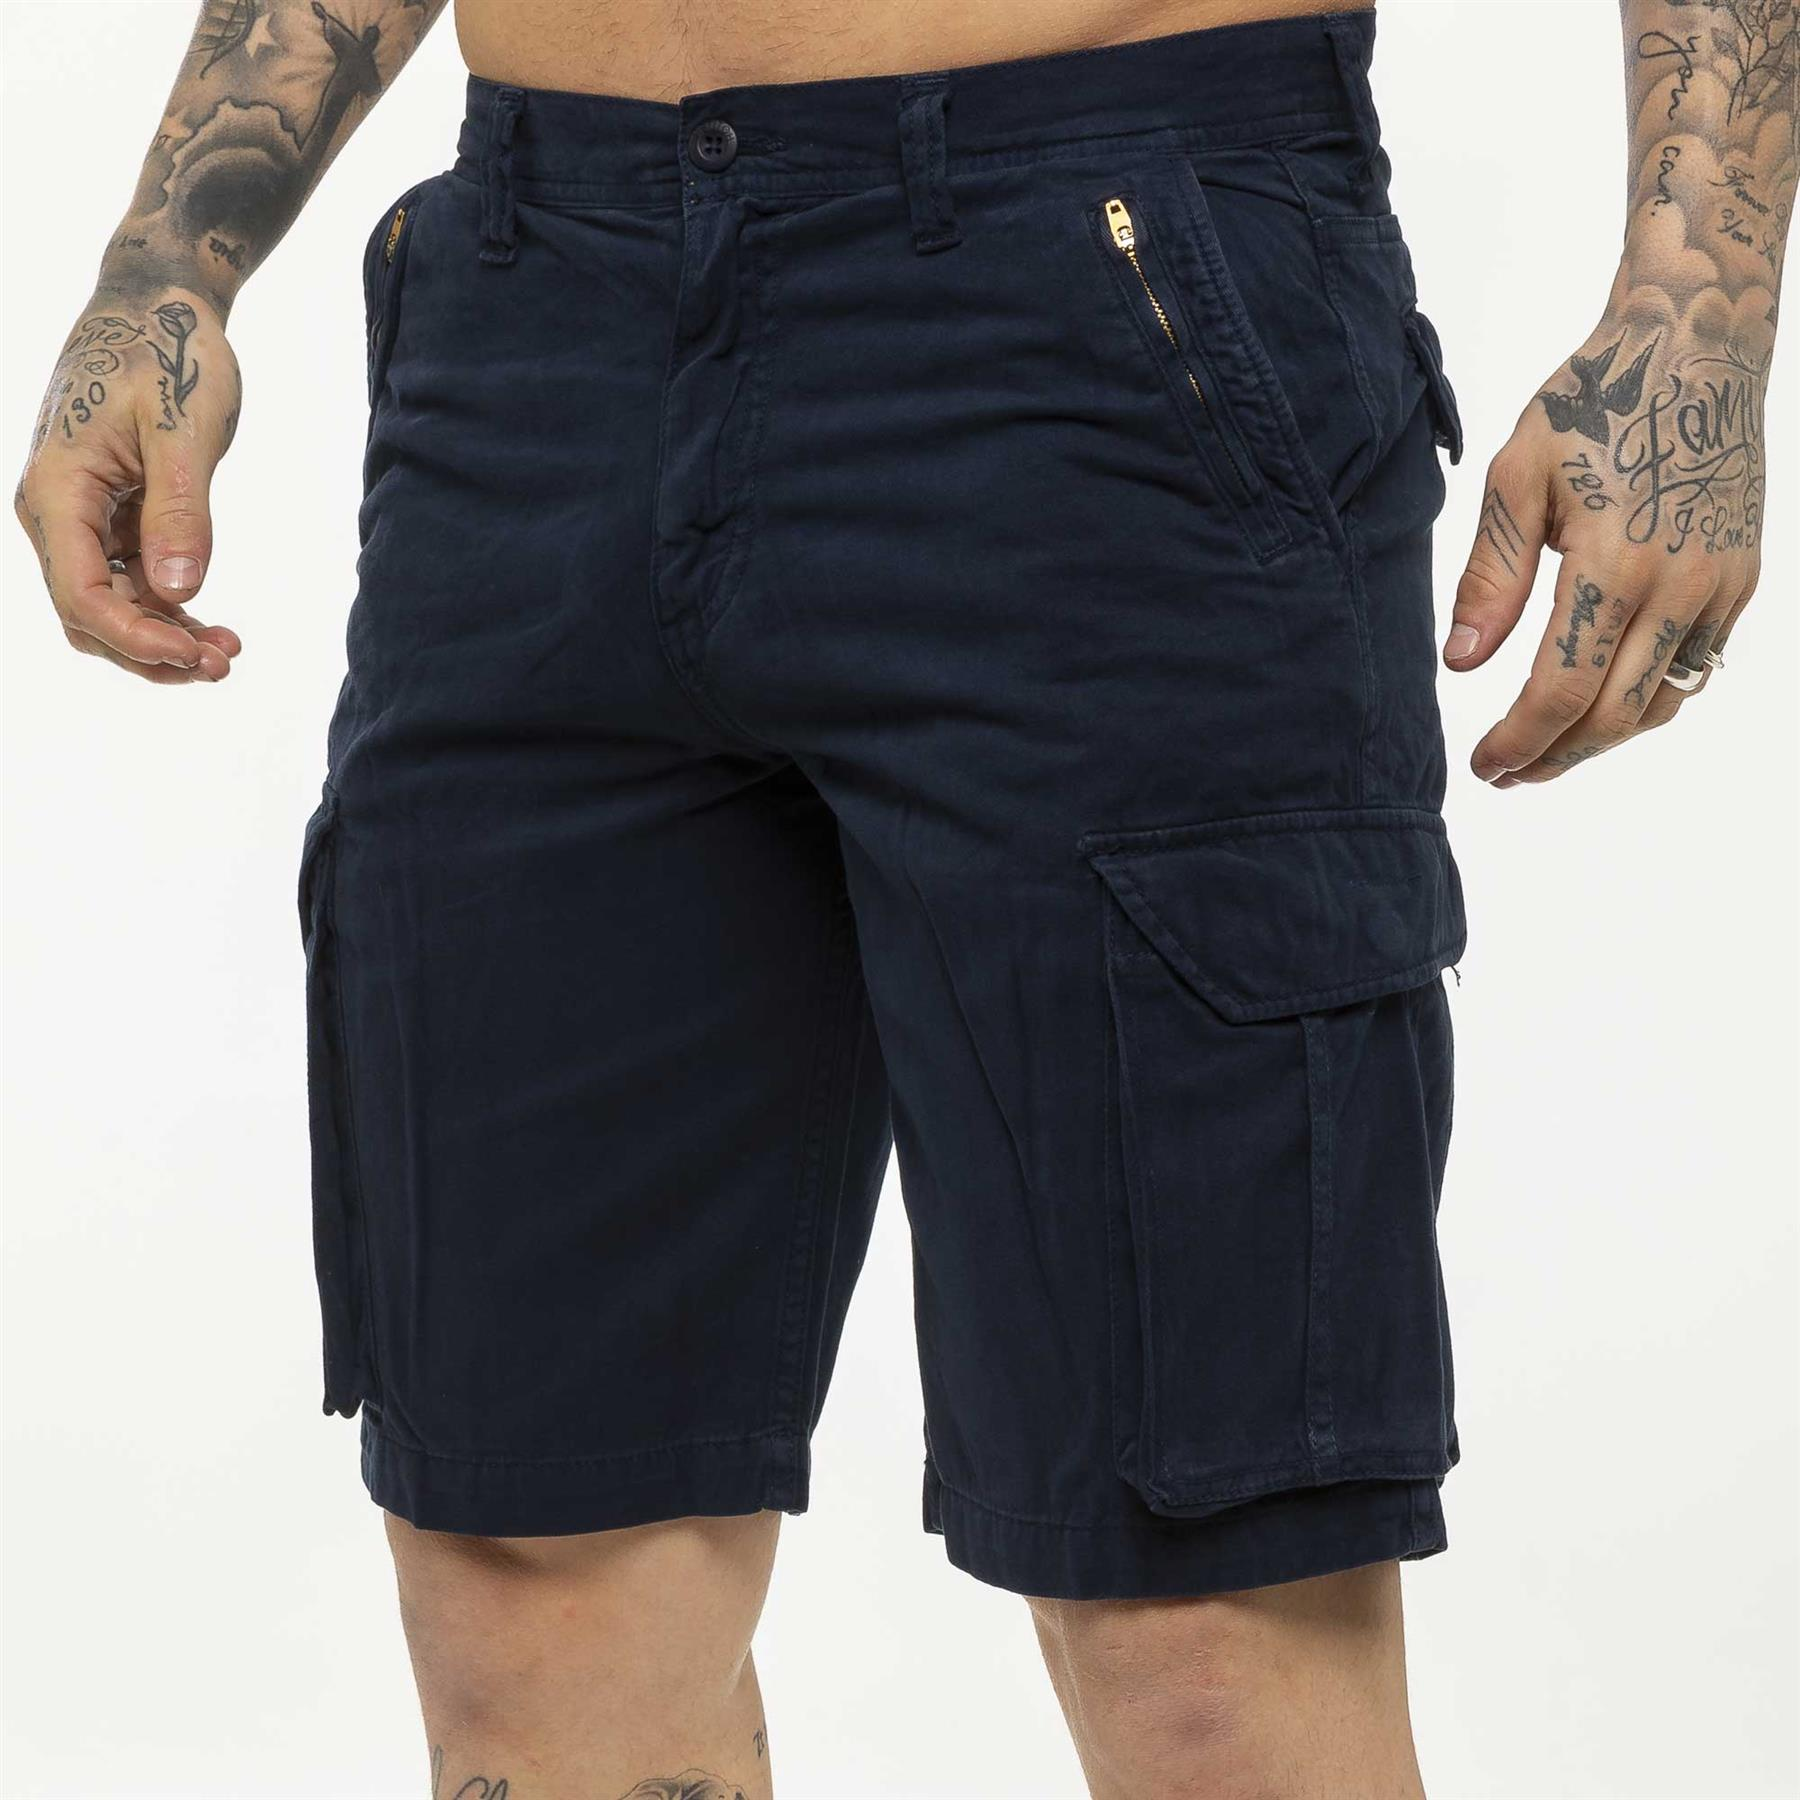 thumbnail 39 - Kruze Jeans Mens Army Combat Shorts Camouflage Cargo Casual Camo Work Half Pants